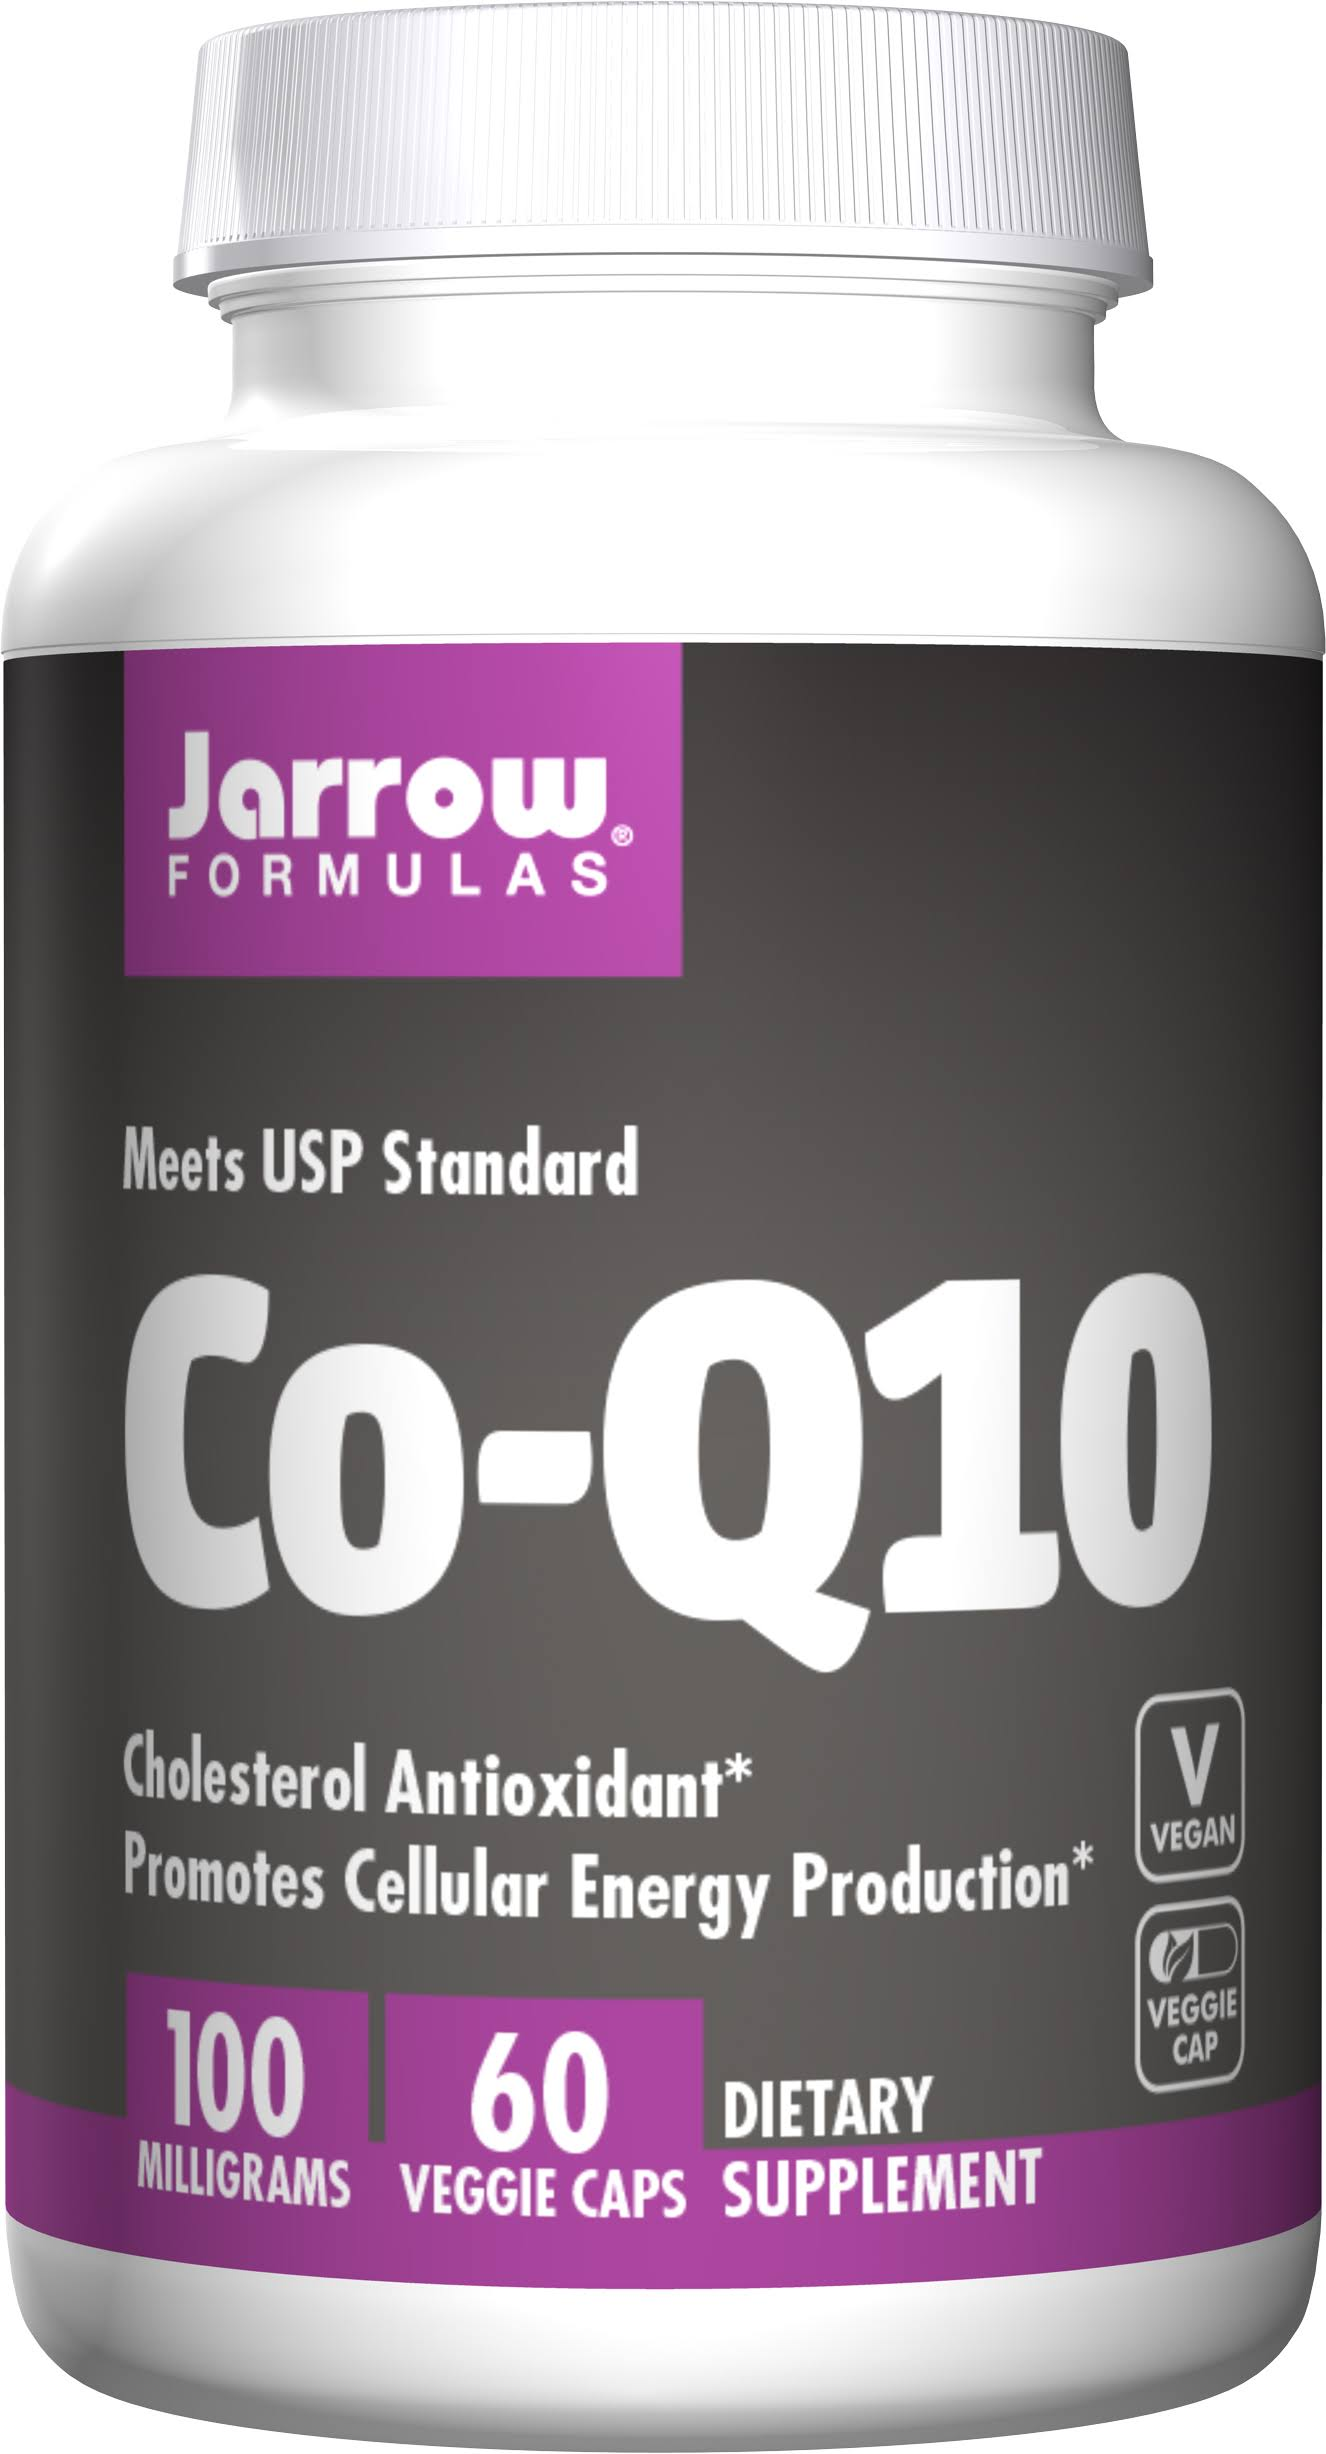 Jarrow Formulas Co-q10 Supplement - 100mg, 60 Capsules